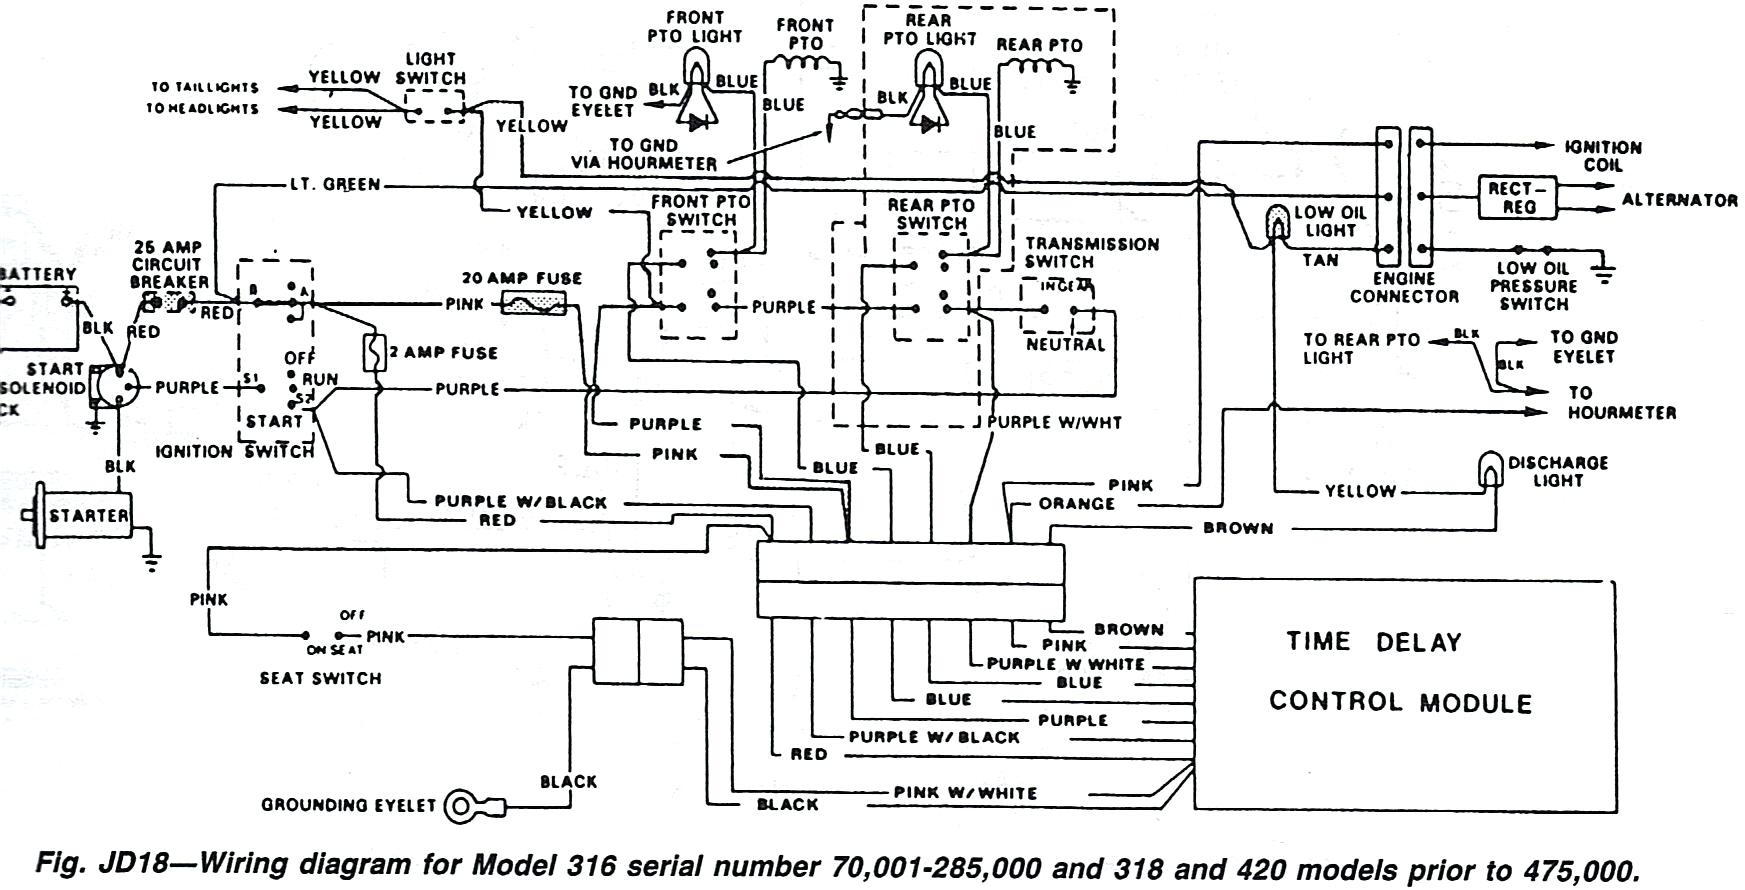 john deere l110 wiring diagram download john deere 3520 wiring diagrams john deere electrical wiring diagrams